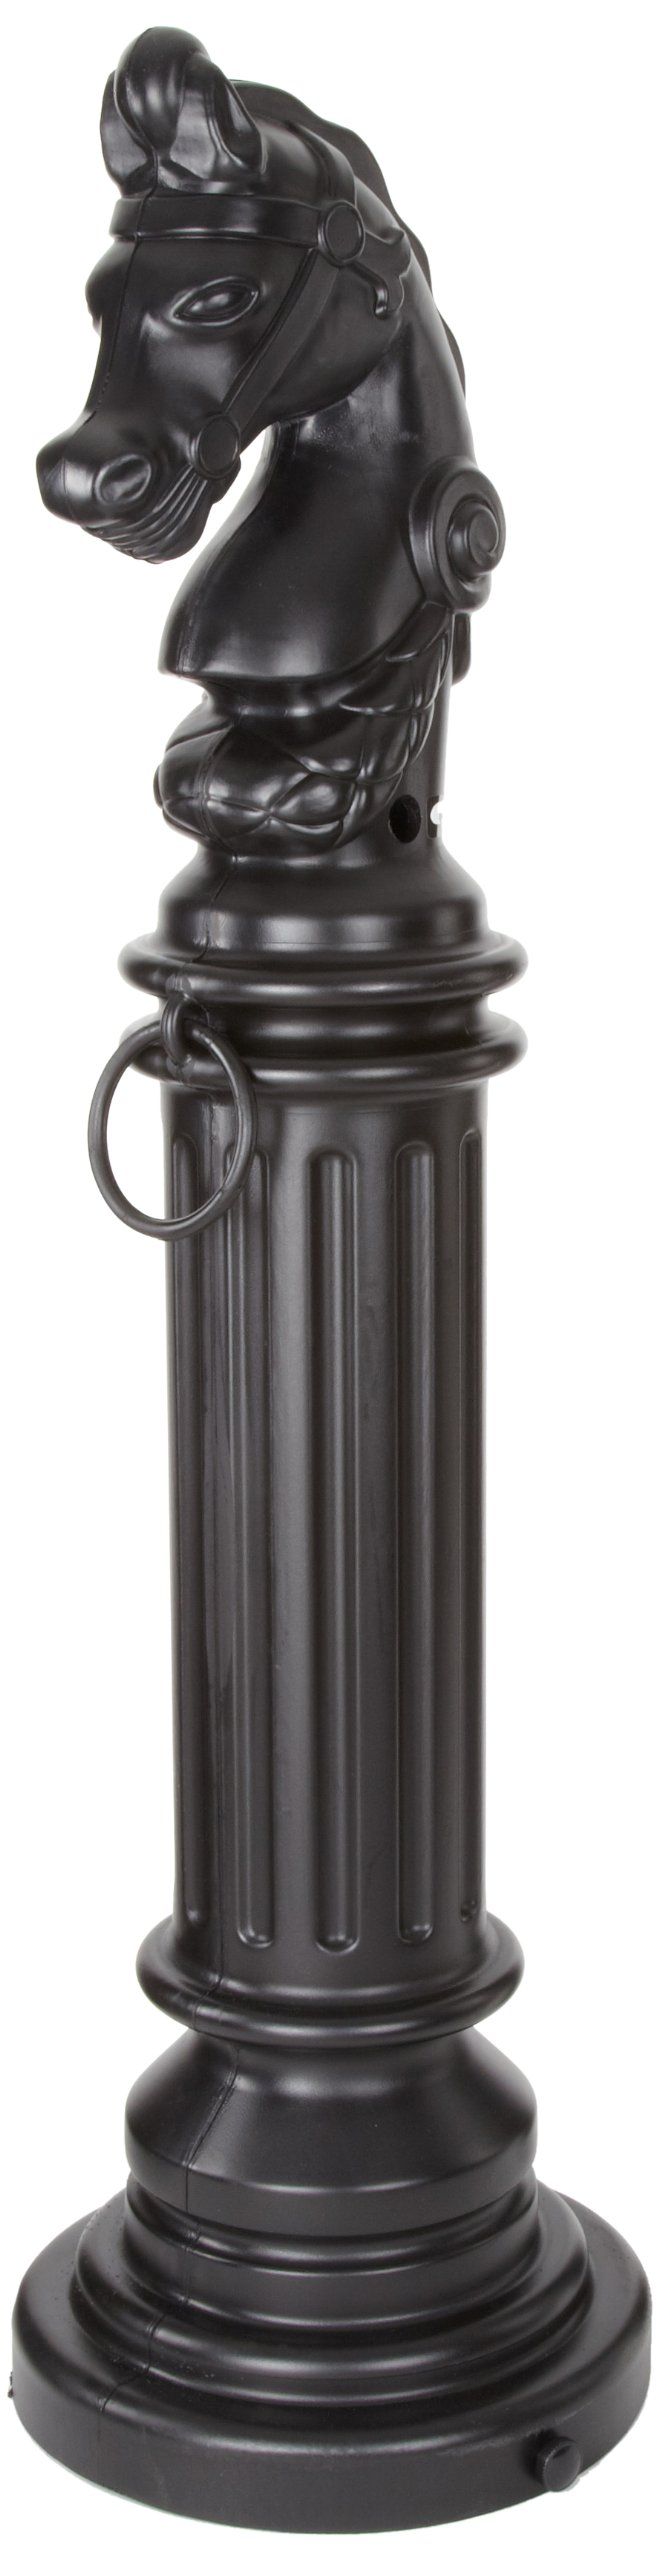 Eagle 1212BLACK SafeSmoker Decorative Cigarette Receptacle with Rubber Bottom, Hitching Post, 12-1/2'' Diameter x 44-1/2'' Height, Black